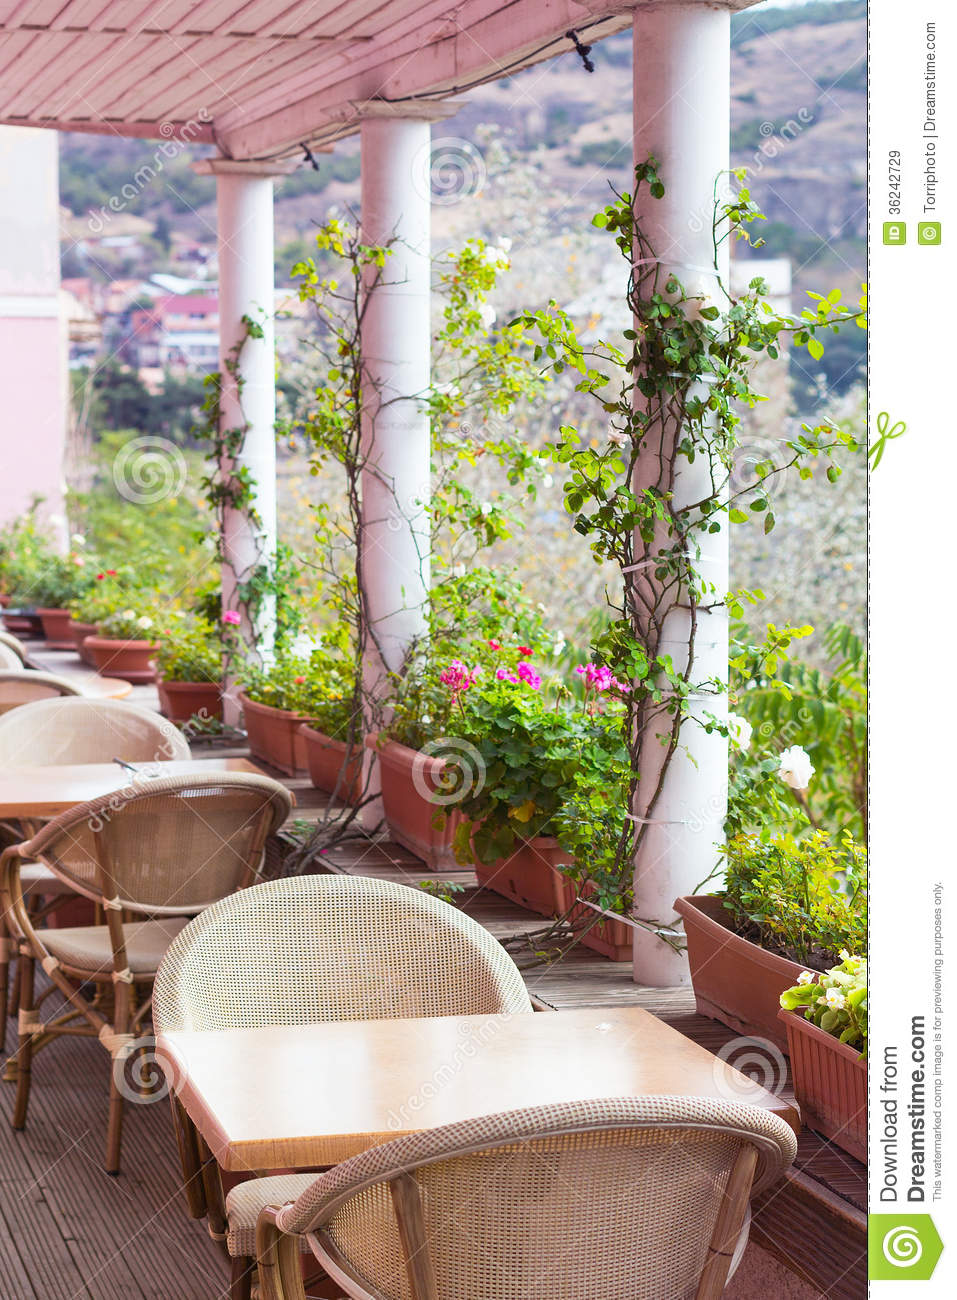 Cafe terrace royalty free stock images image 36242729 - Decoratie terrace ...